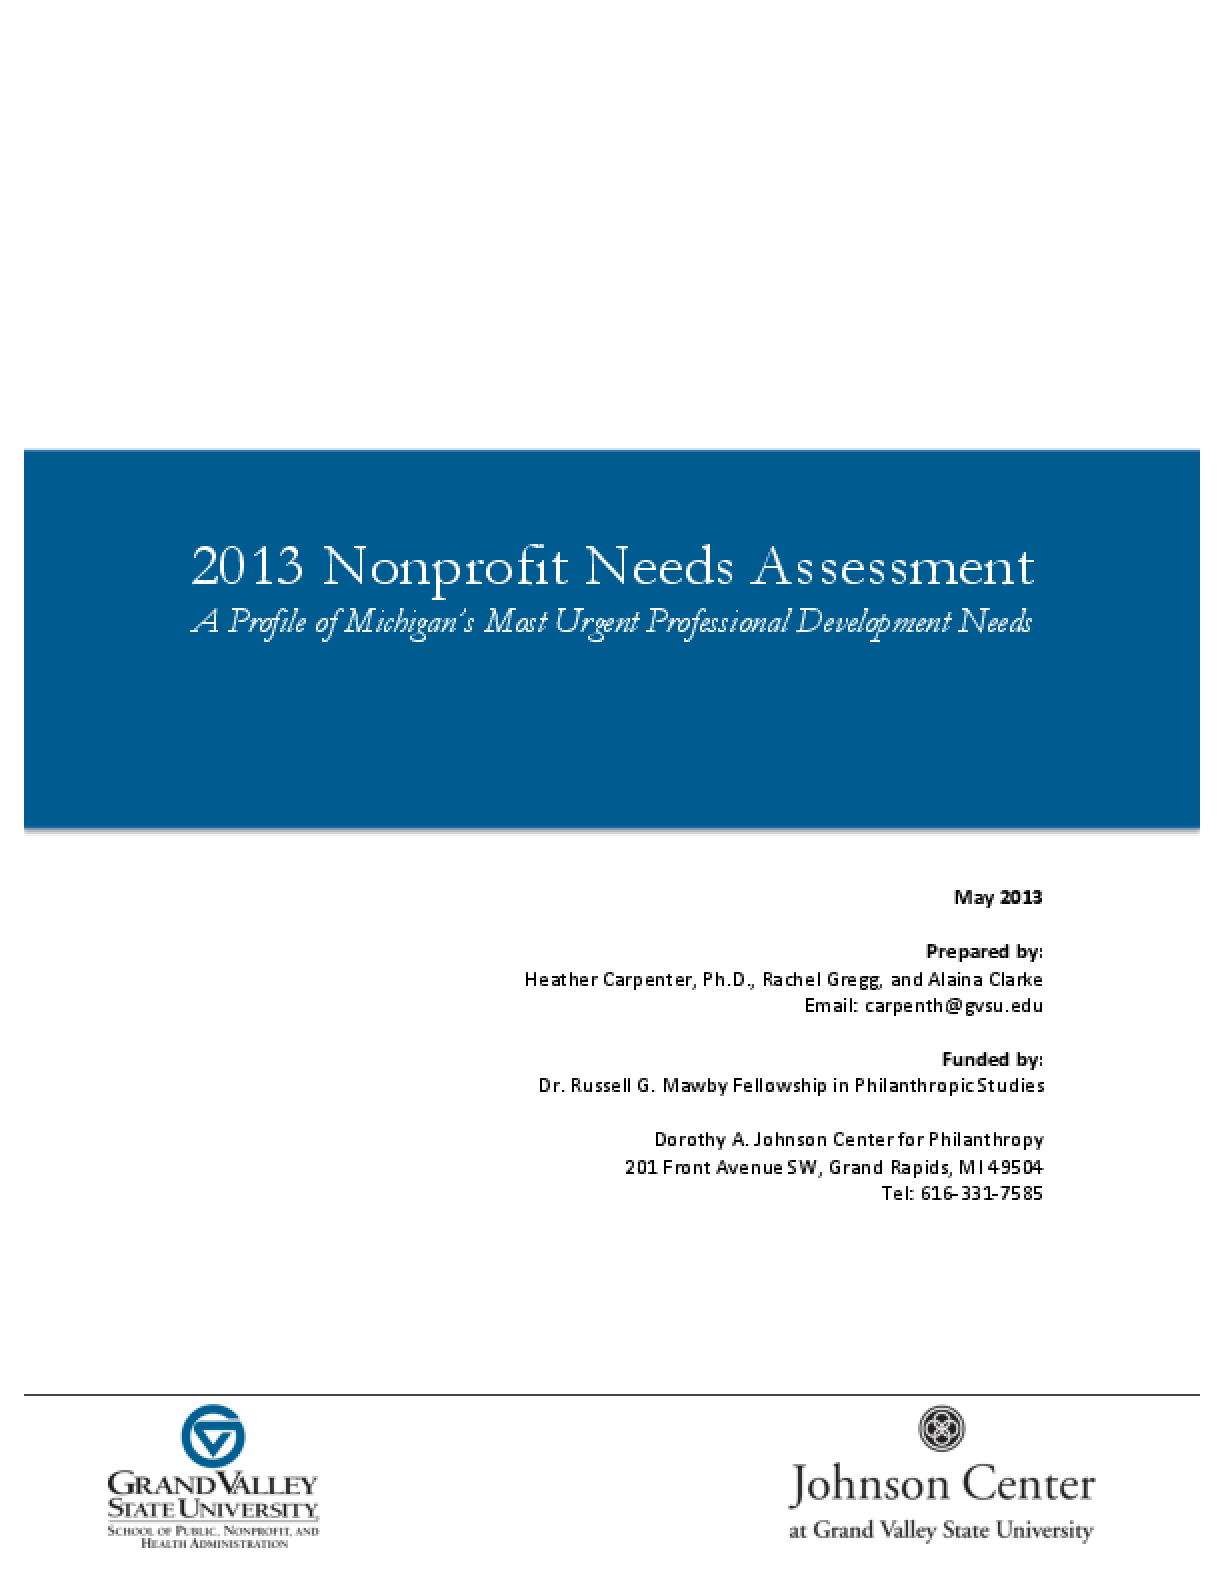 2013 Nonprofit Needs Assessment: A Profile of Michigan's Most Crucial Professional Development Needs